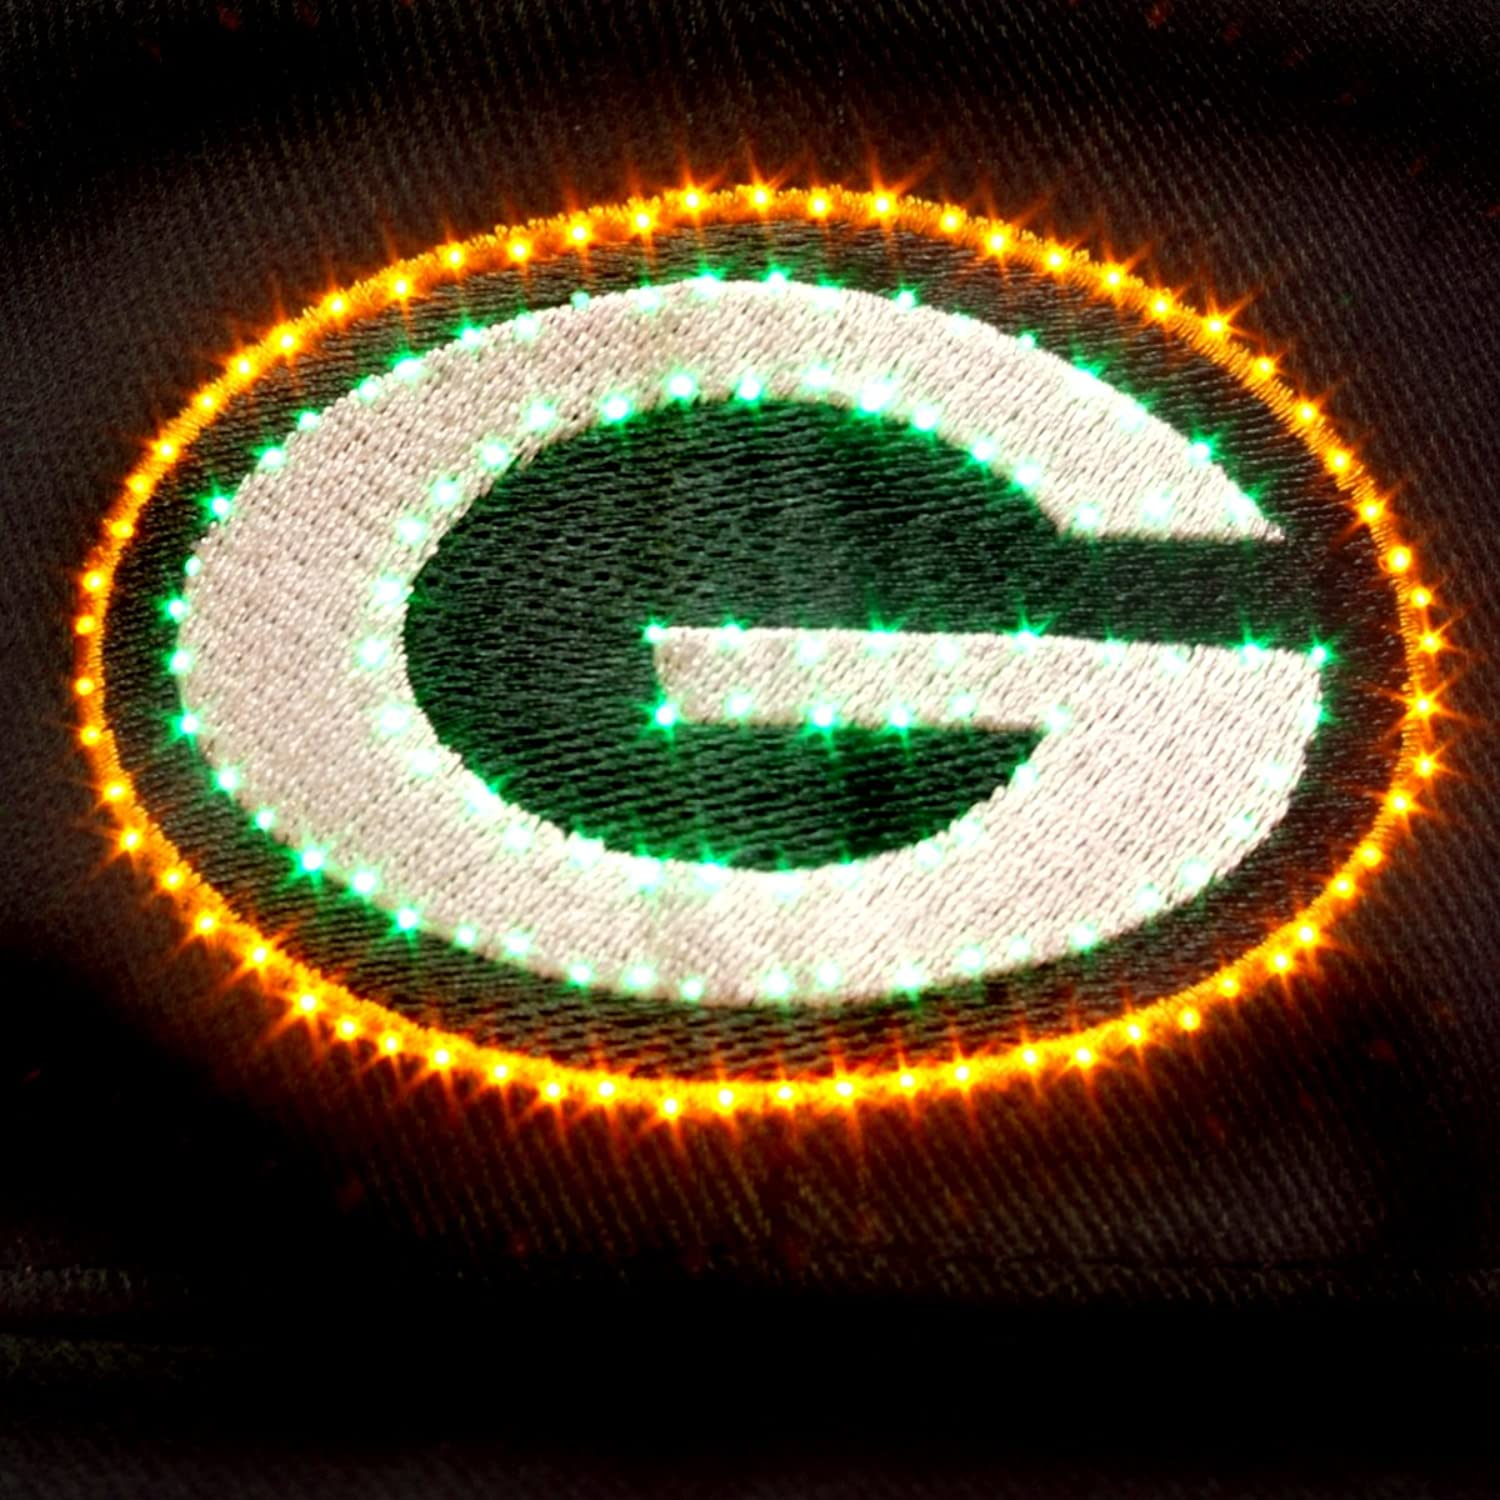 Amazon.com  NFL Green Bay Packers LED Light-Up Logo Adjustable Hat  Sports Related Merchandise  Clothing & Amazon.com : NFL Green Bay Packers LED Light-Up Logo Adjustable ... azcodes.com